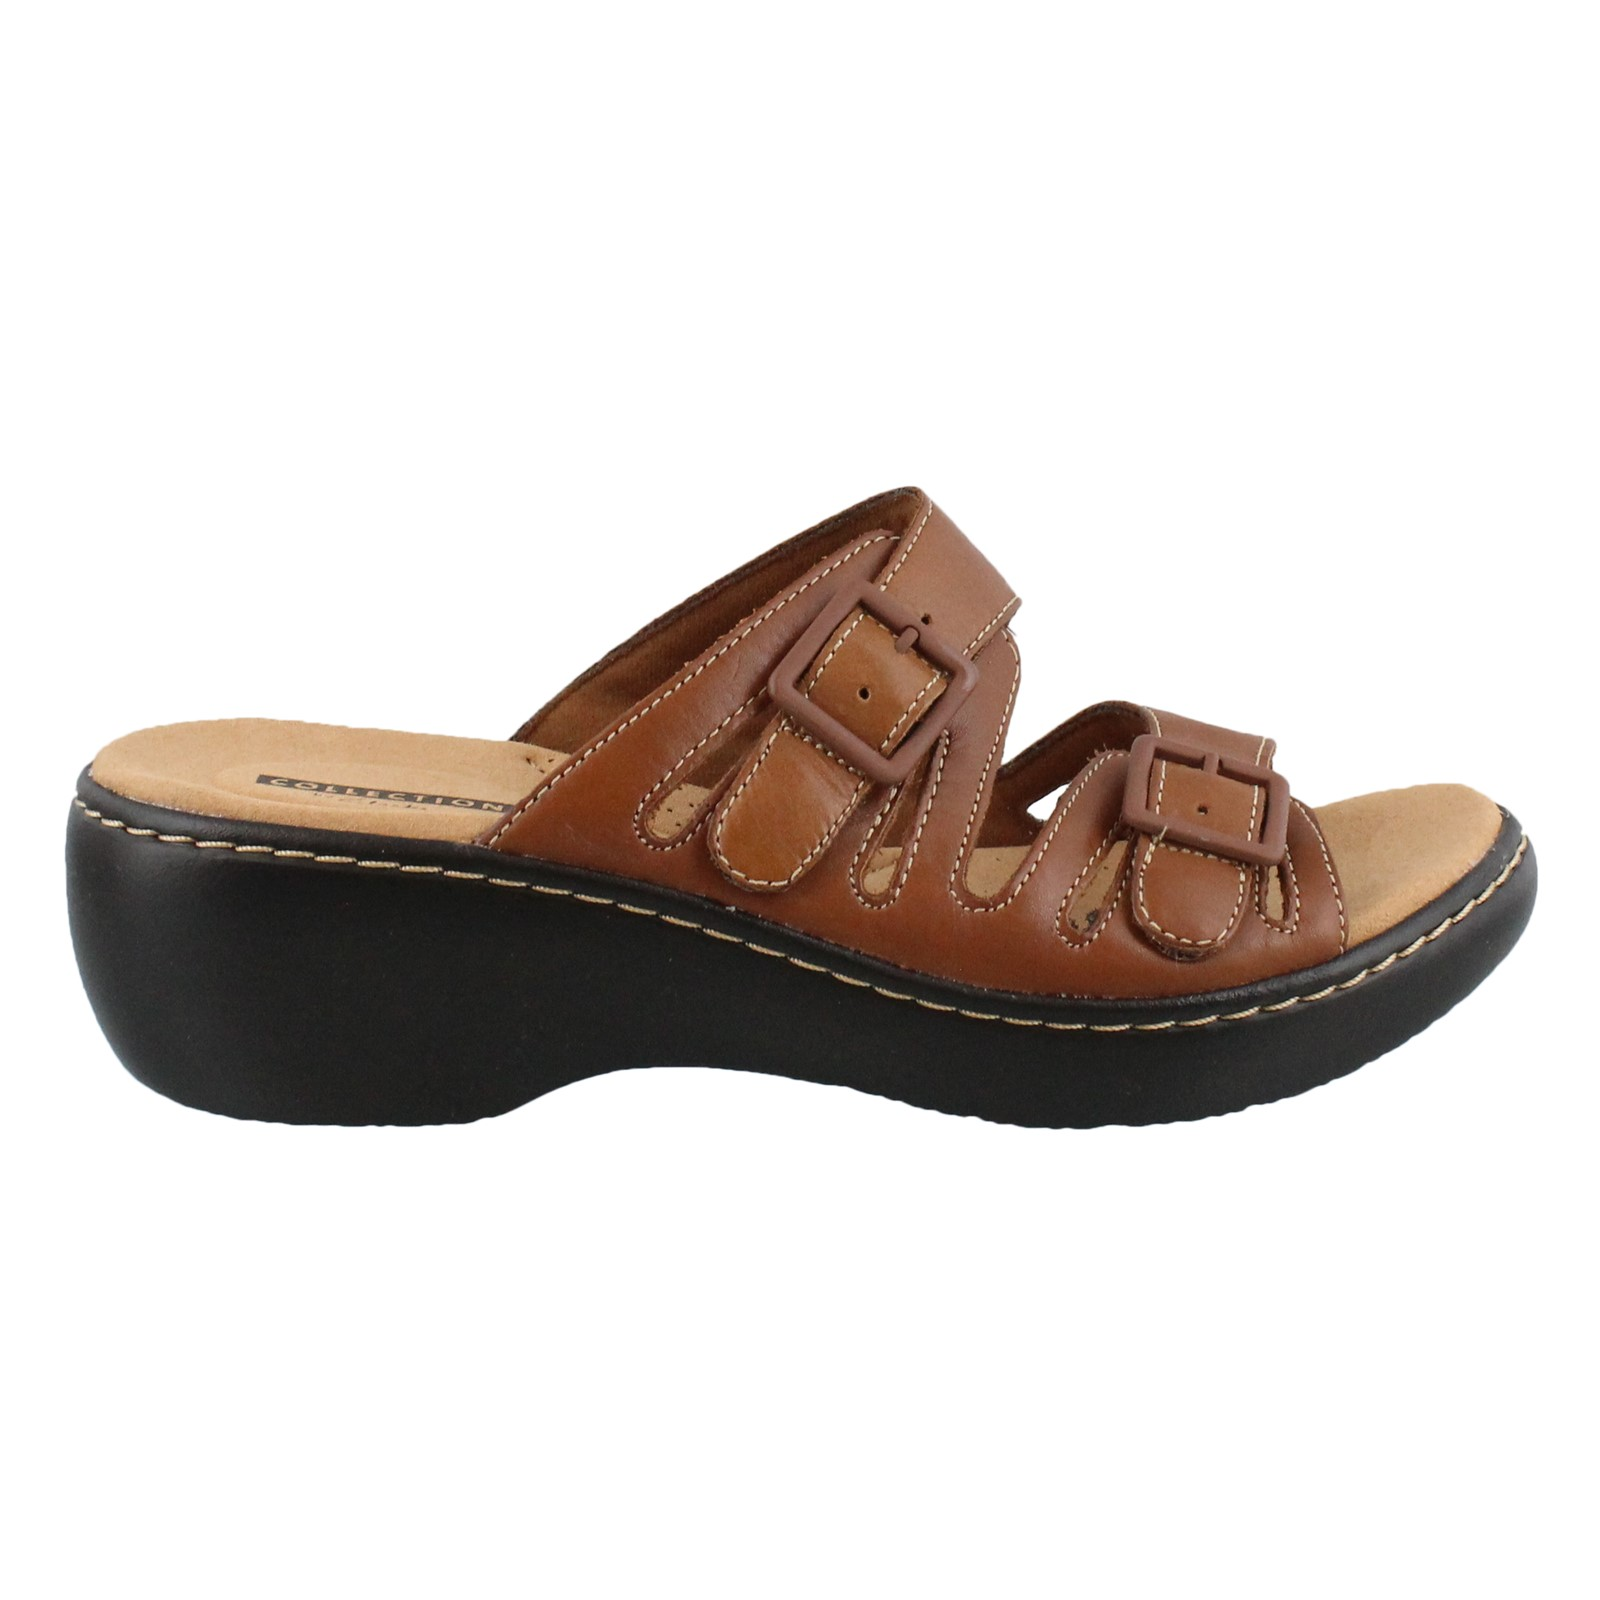 ce168be5992da Women's Clarks, Delana Liri Mid Heel Sandals | Peltz Shoes